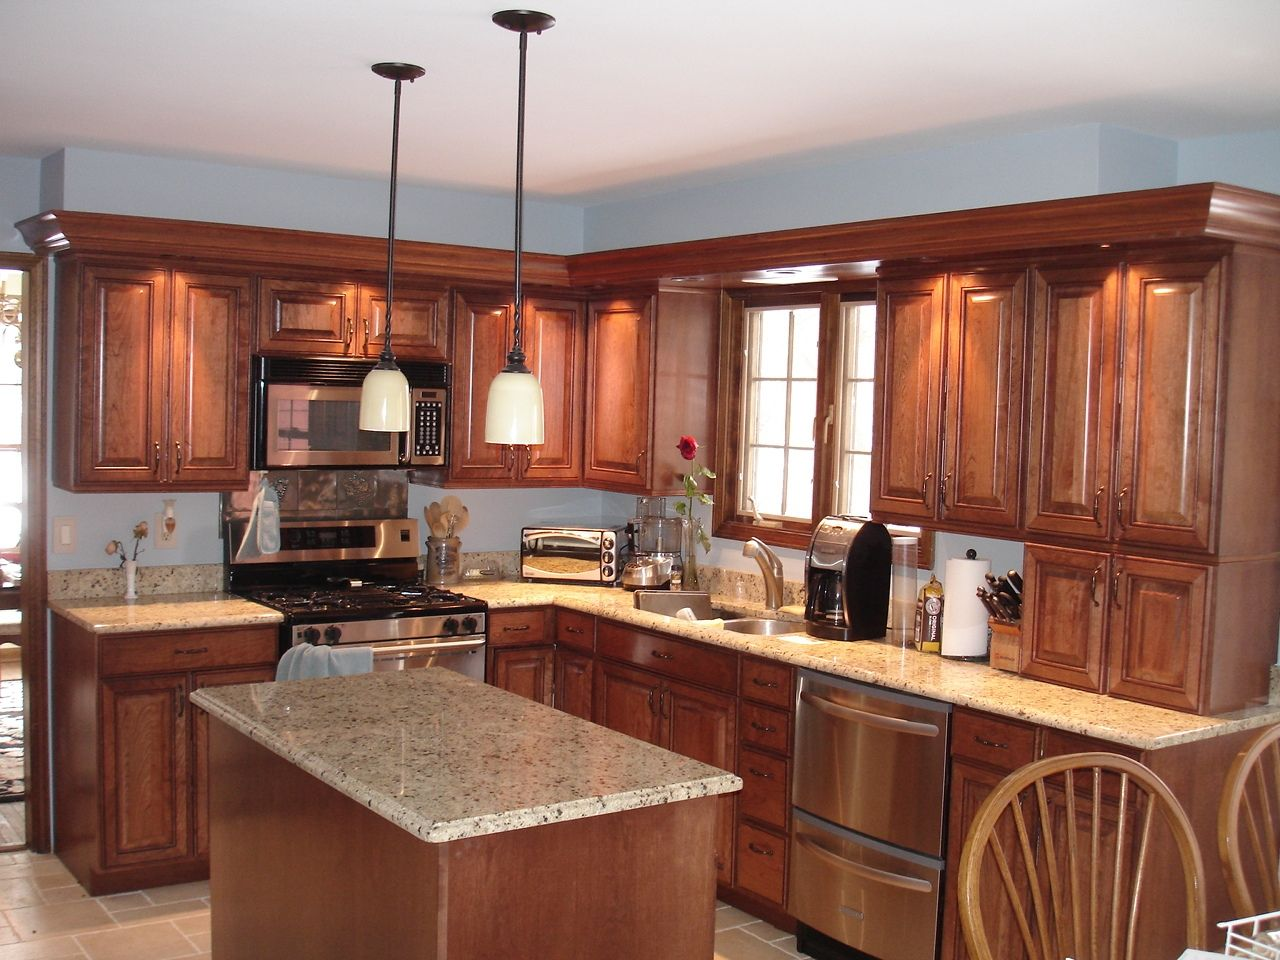 10x12 kitchens hand made kitchen remodel by customcraft homes millwork custommade on kitchen renovation id=55303